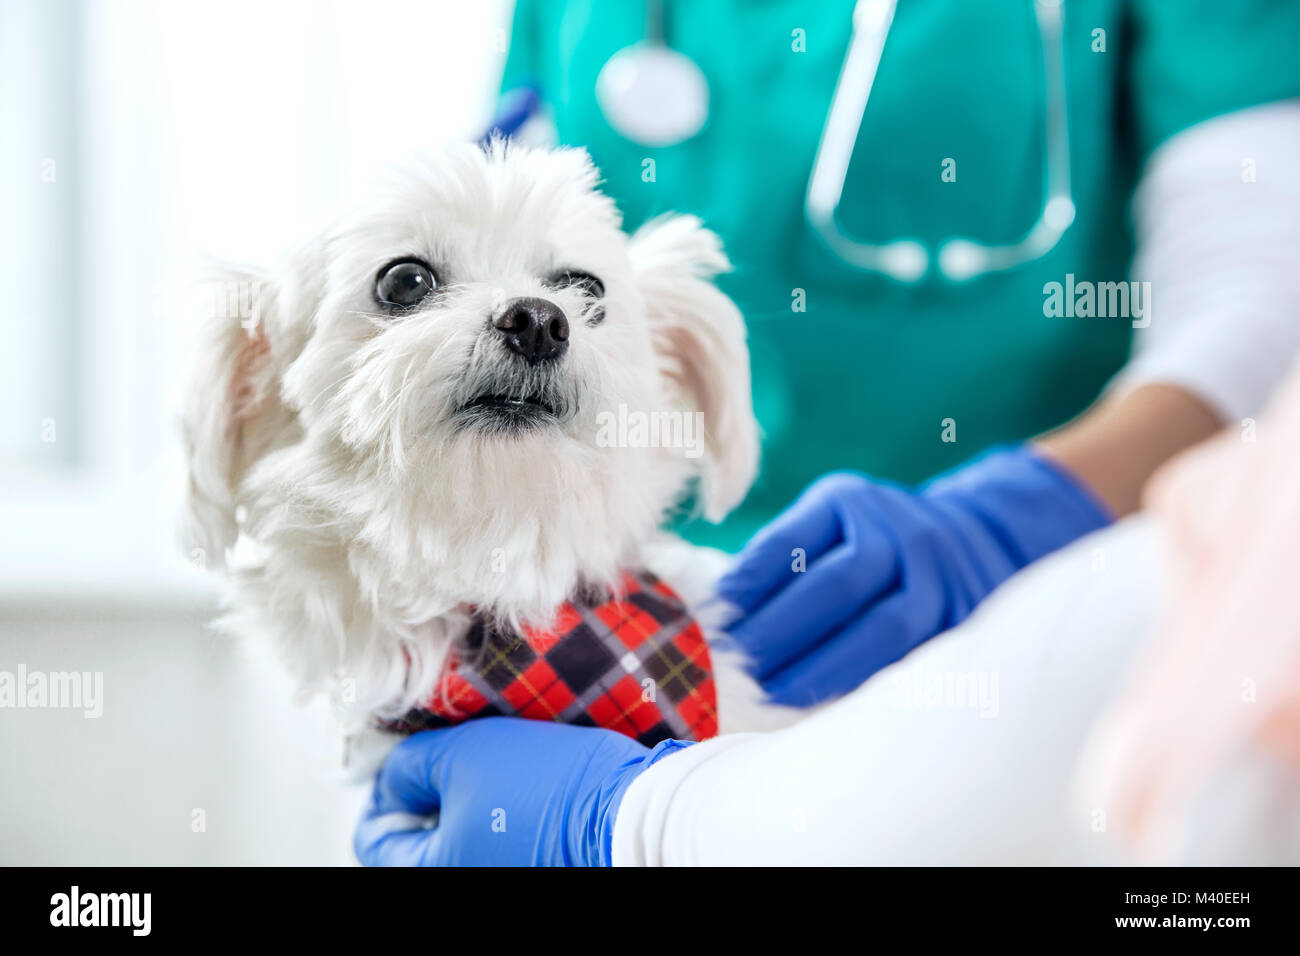 White maltese and two people during vet examination - Stock Image